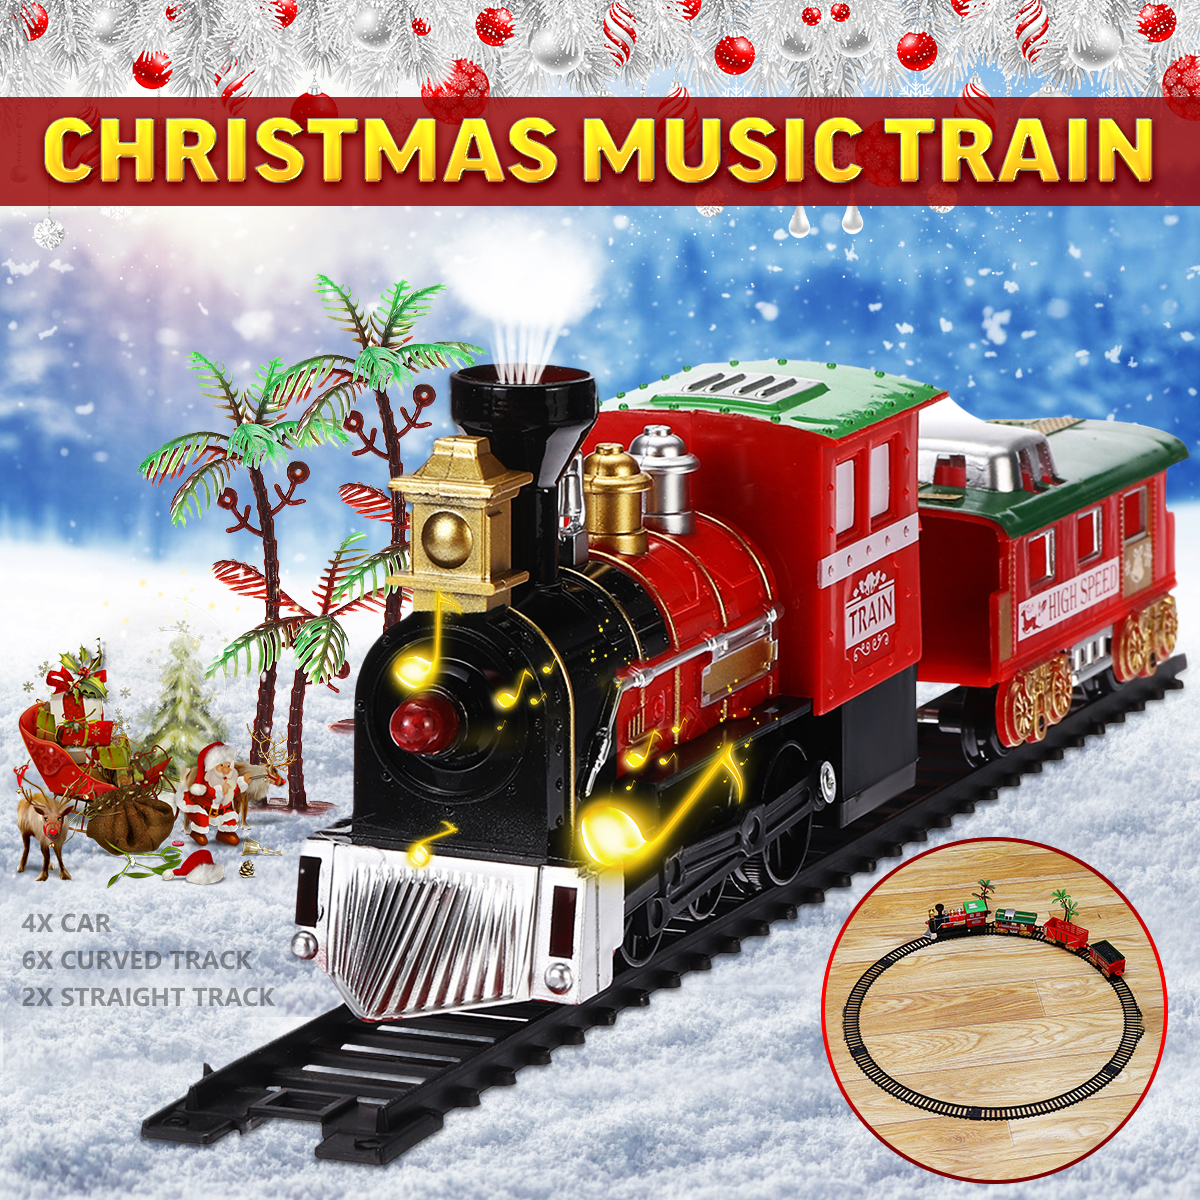 Christmas Musical Light Train Trees Box Carriage Kid Toy Ornament Decor Gift Light Music Toy Set